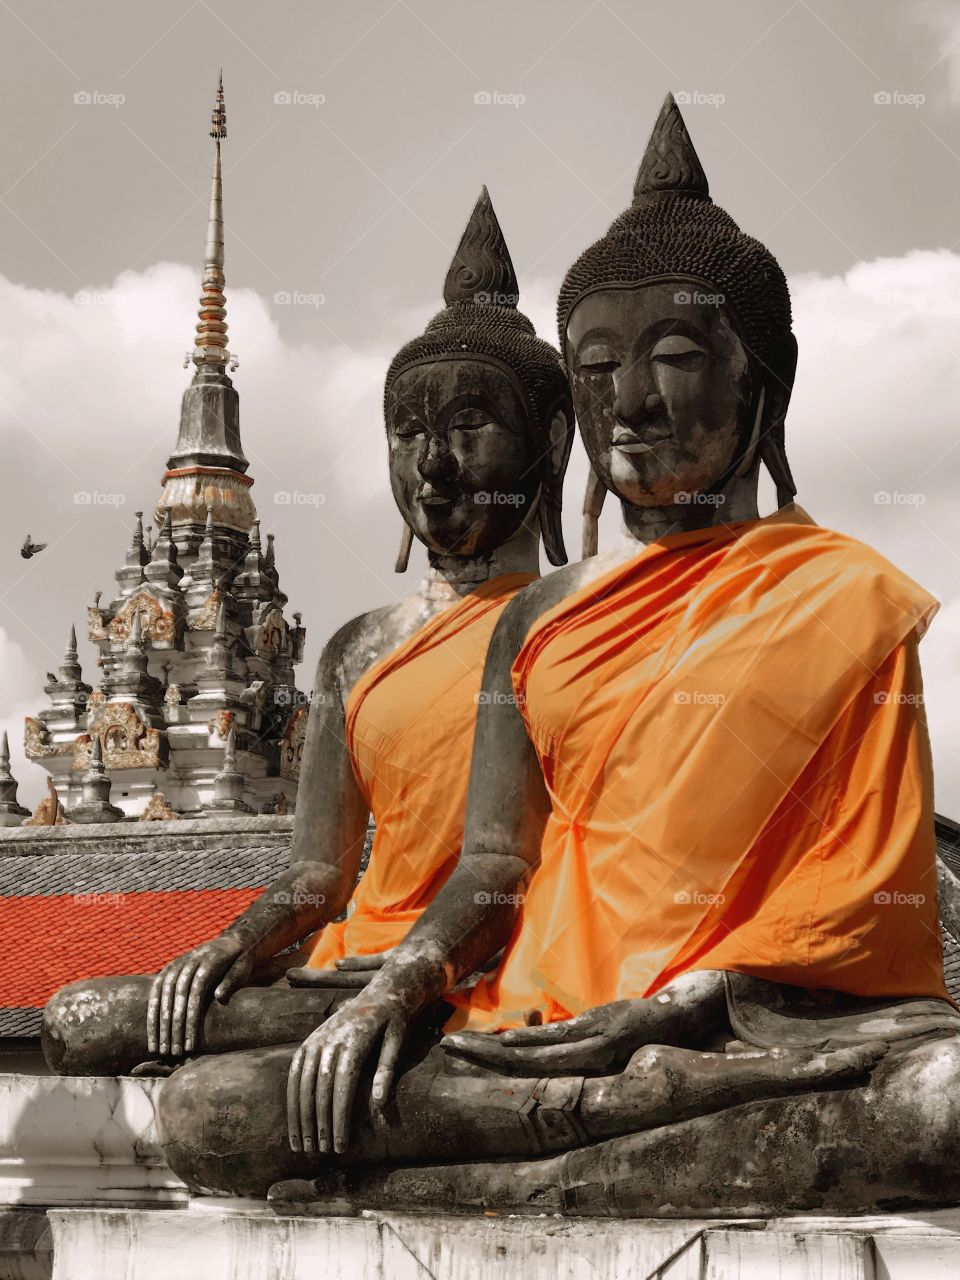 Twin Buddha images in a temple with pagoda seen in backgrounds